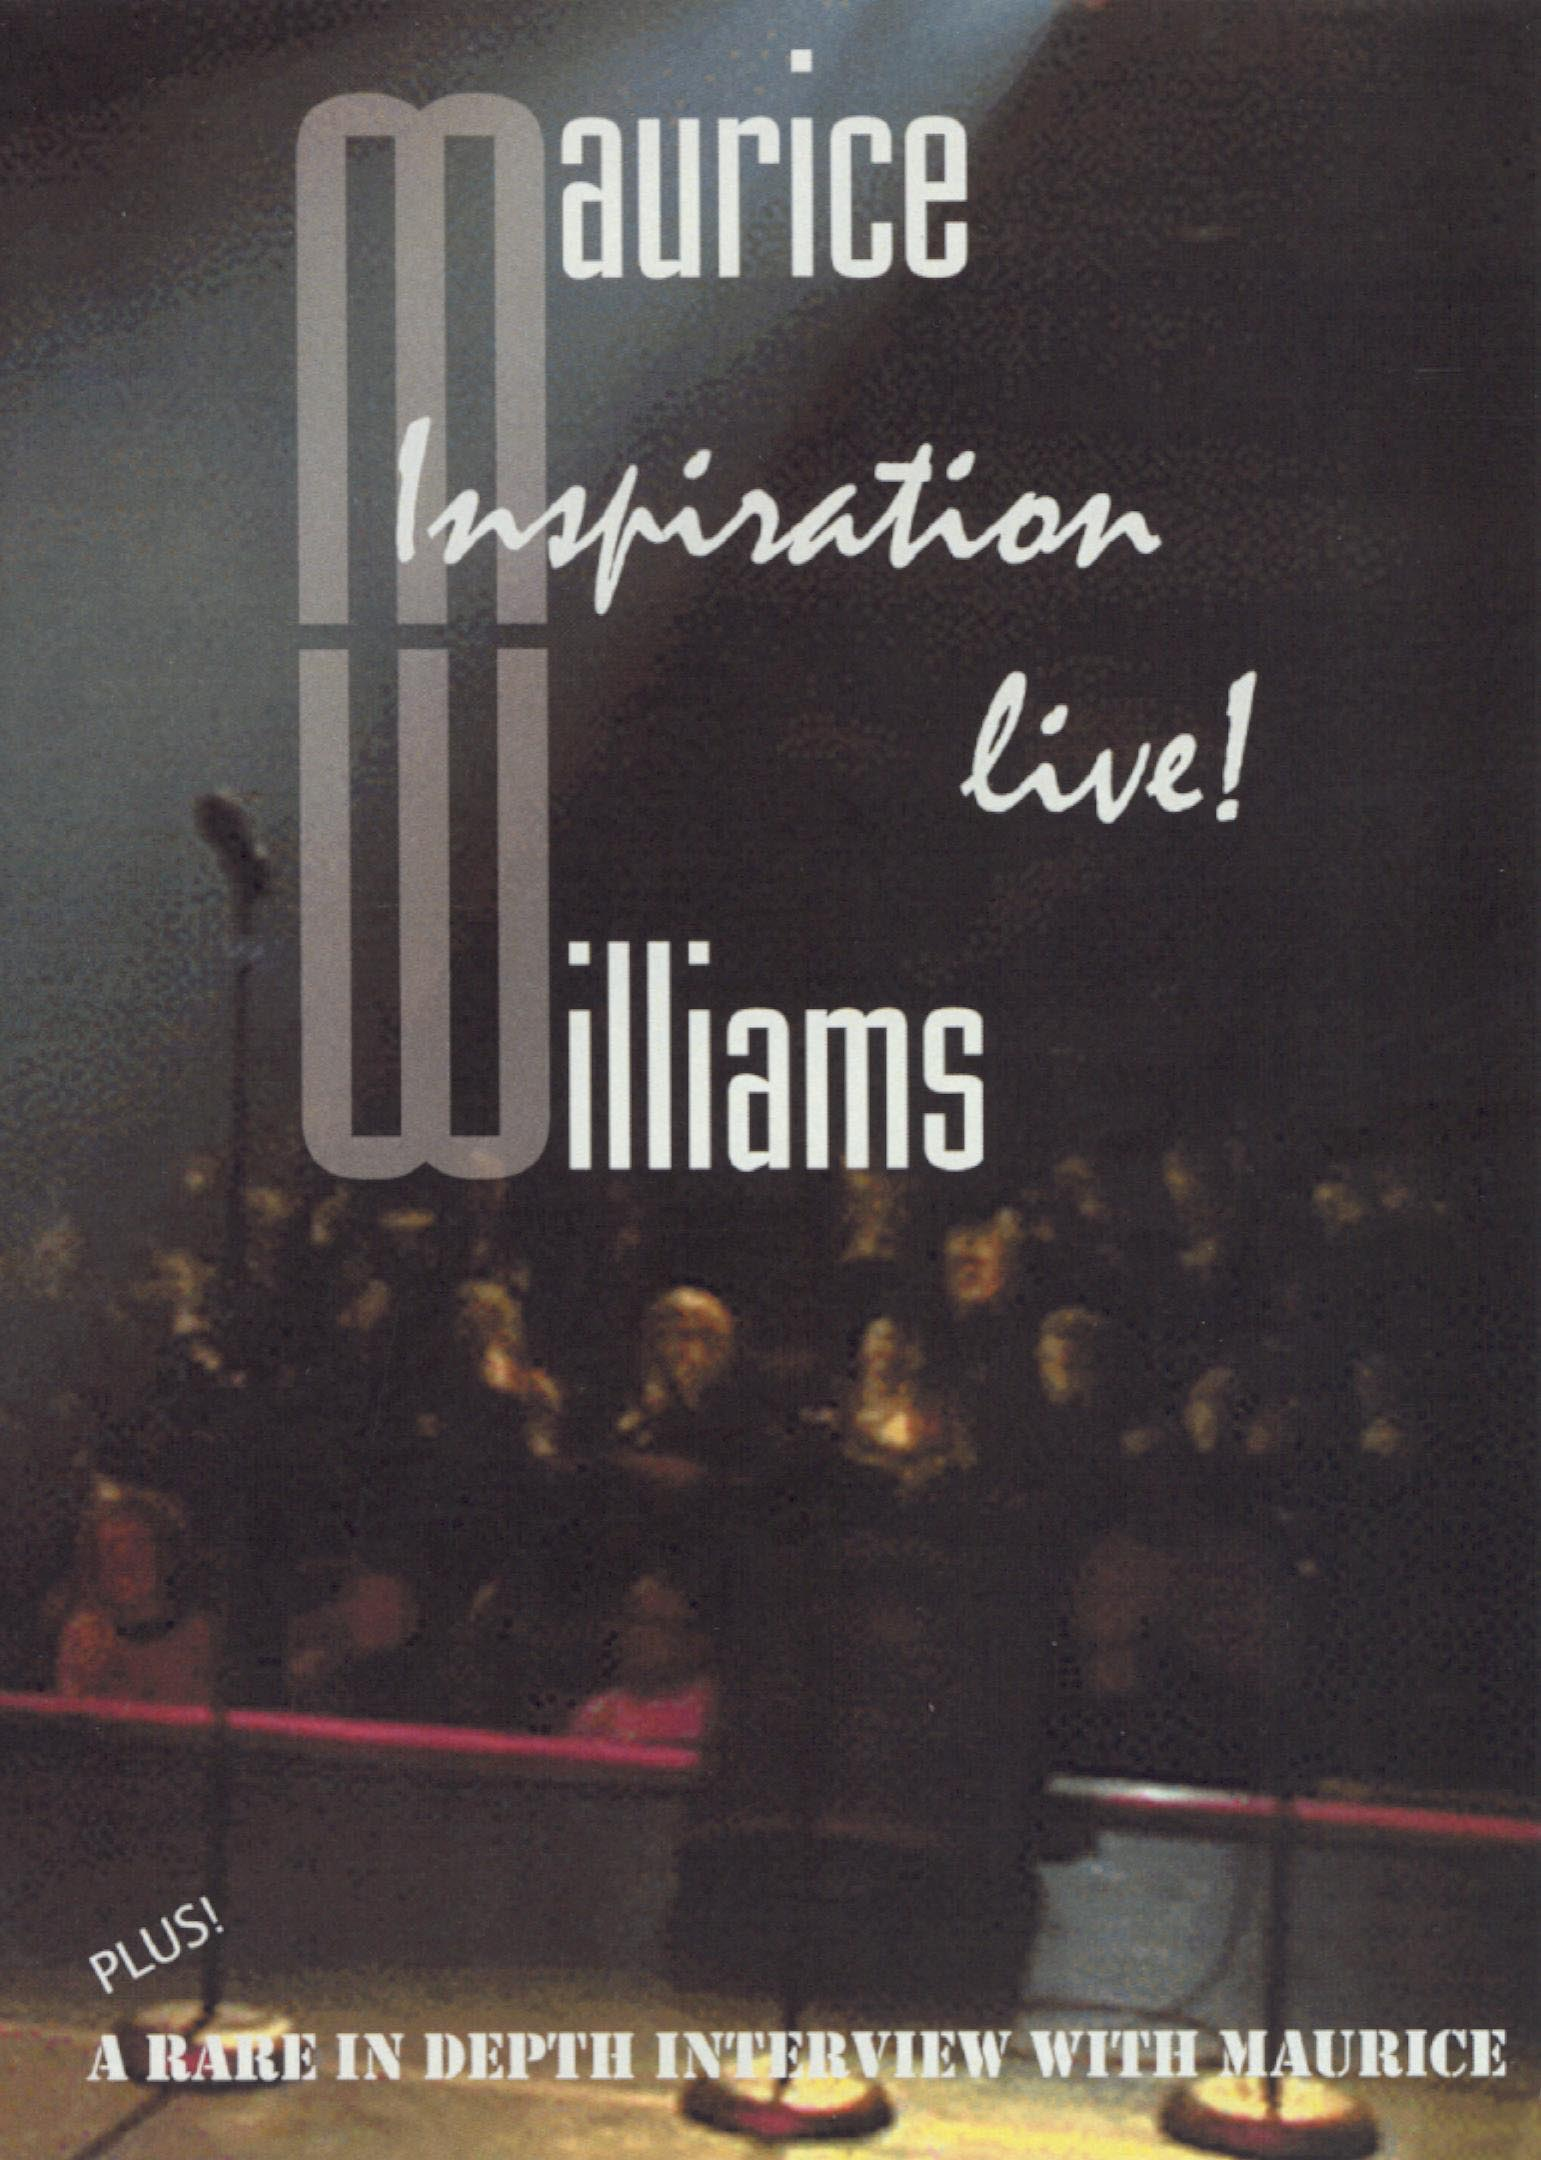 Maurice Williams: Inspiration Live!